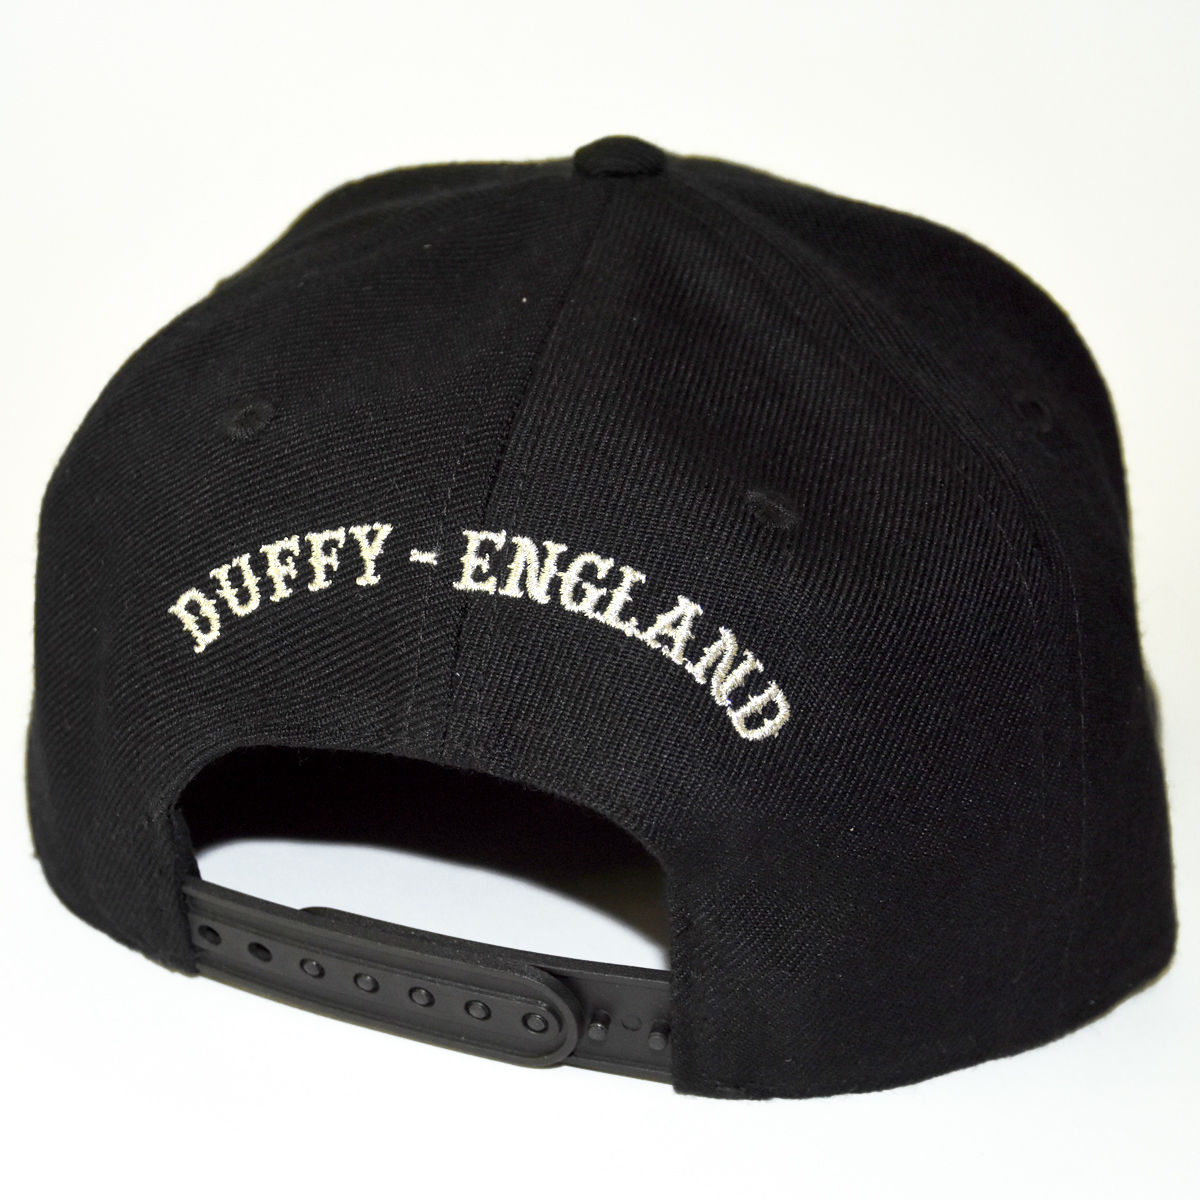 Duffy England Black Cap - product images  of